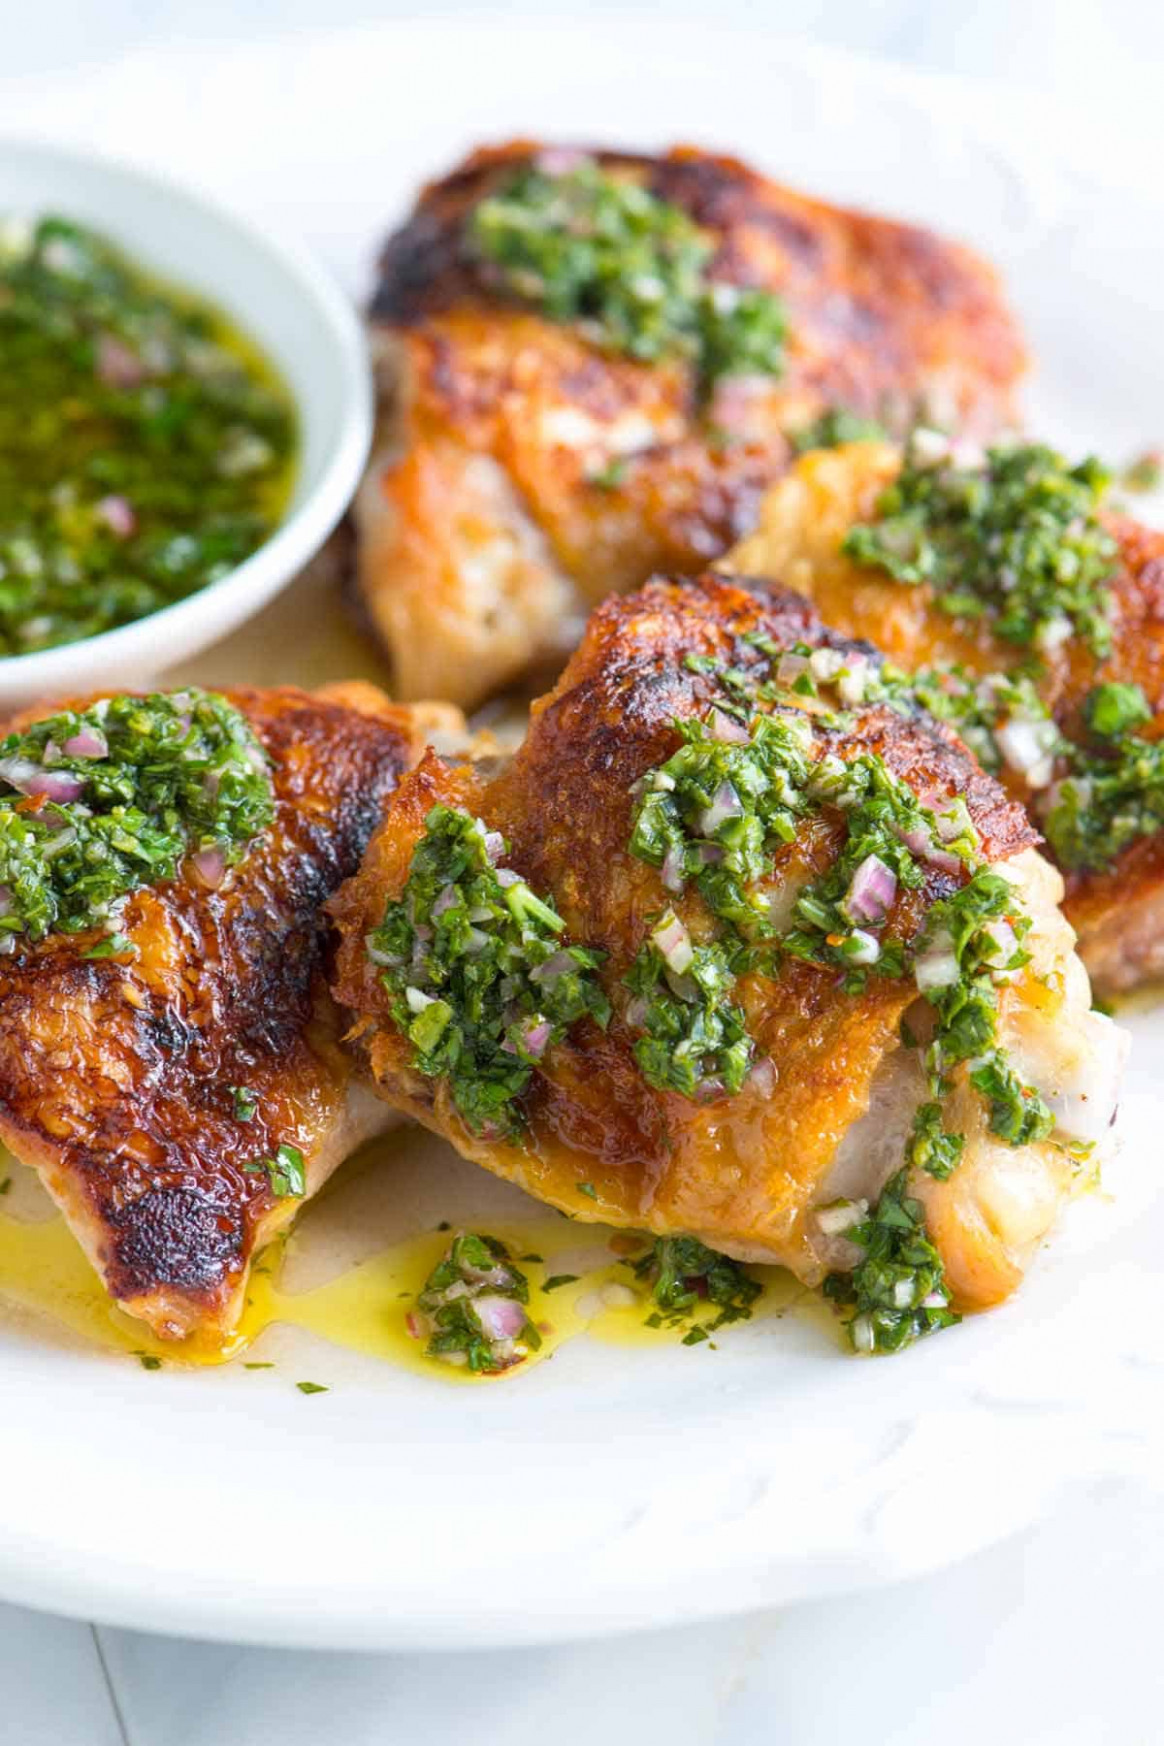 Chimichurri Chicken Thighs Recipe - Recipes Made With Chicken Thighs